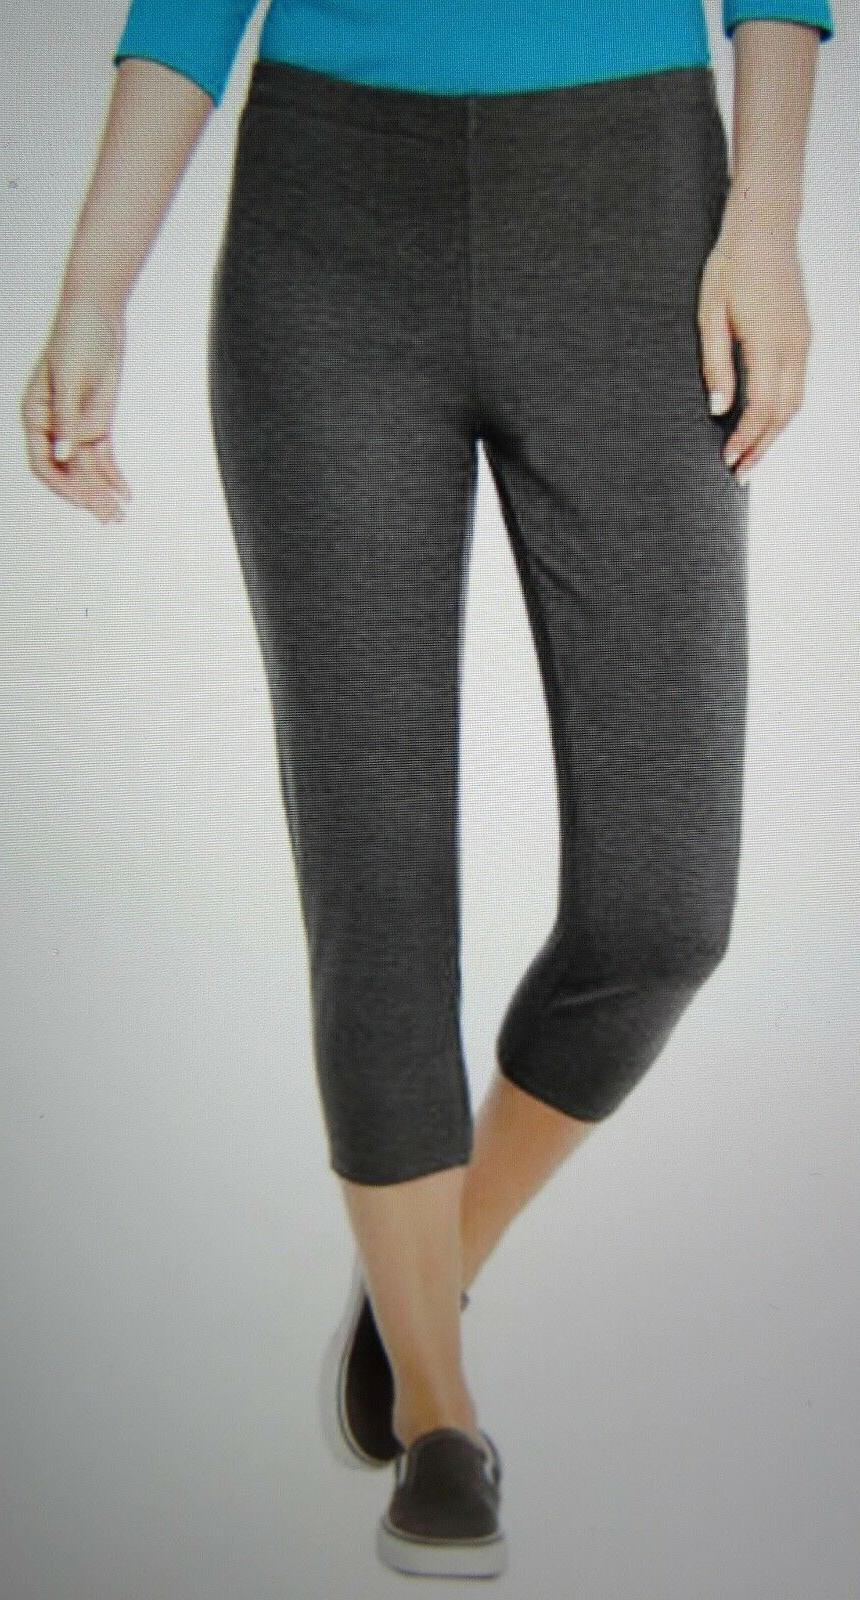 Hanes Women's Stretch Jersey Capris Charcoal Heather 2XL